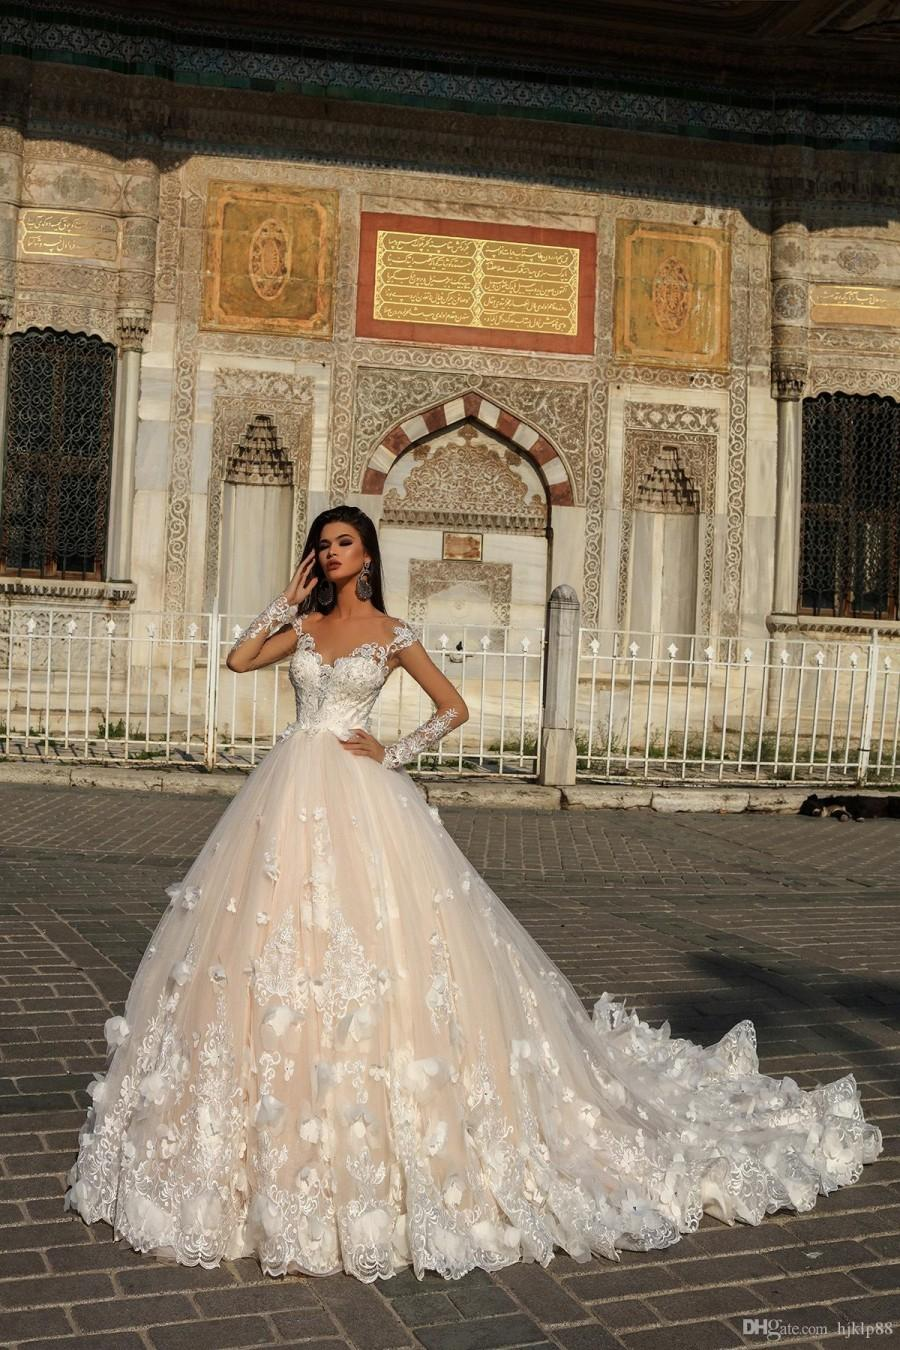 Wedding - Discount 2019 New A Line Wedding Dresses Lace Applique 3D Floral Appliques 3141 MELEK Weddings Dresses Weding Dresses From Hjklp88, $128.15